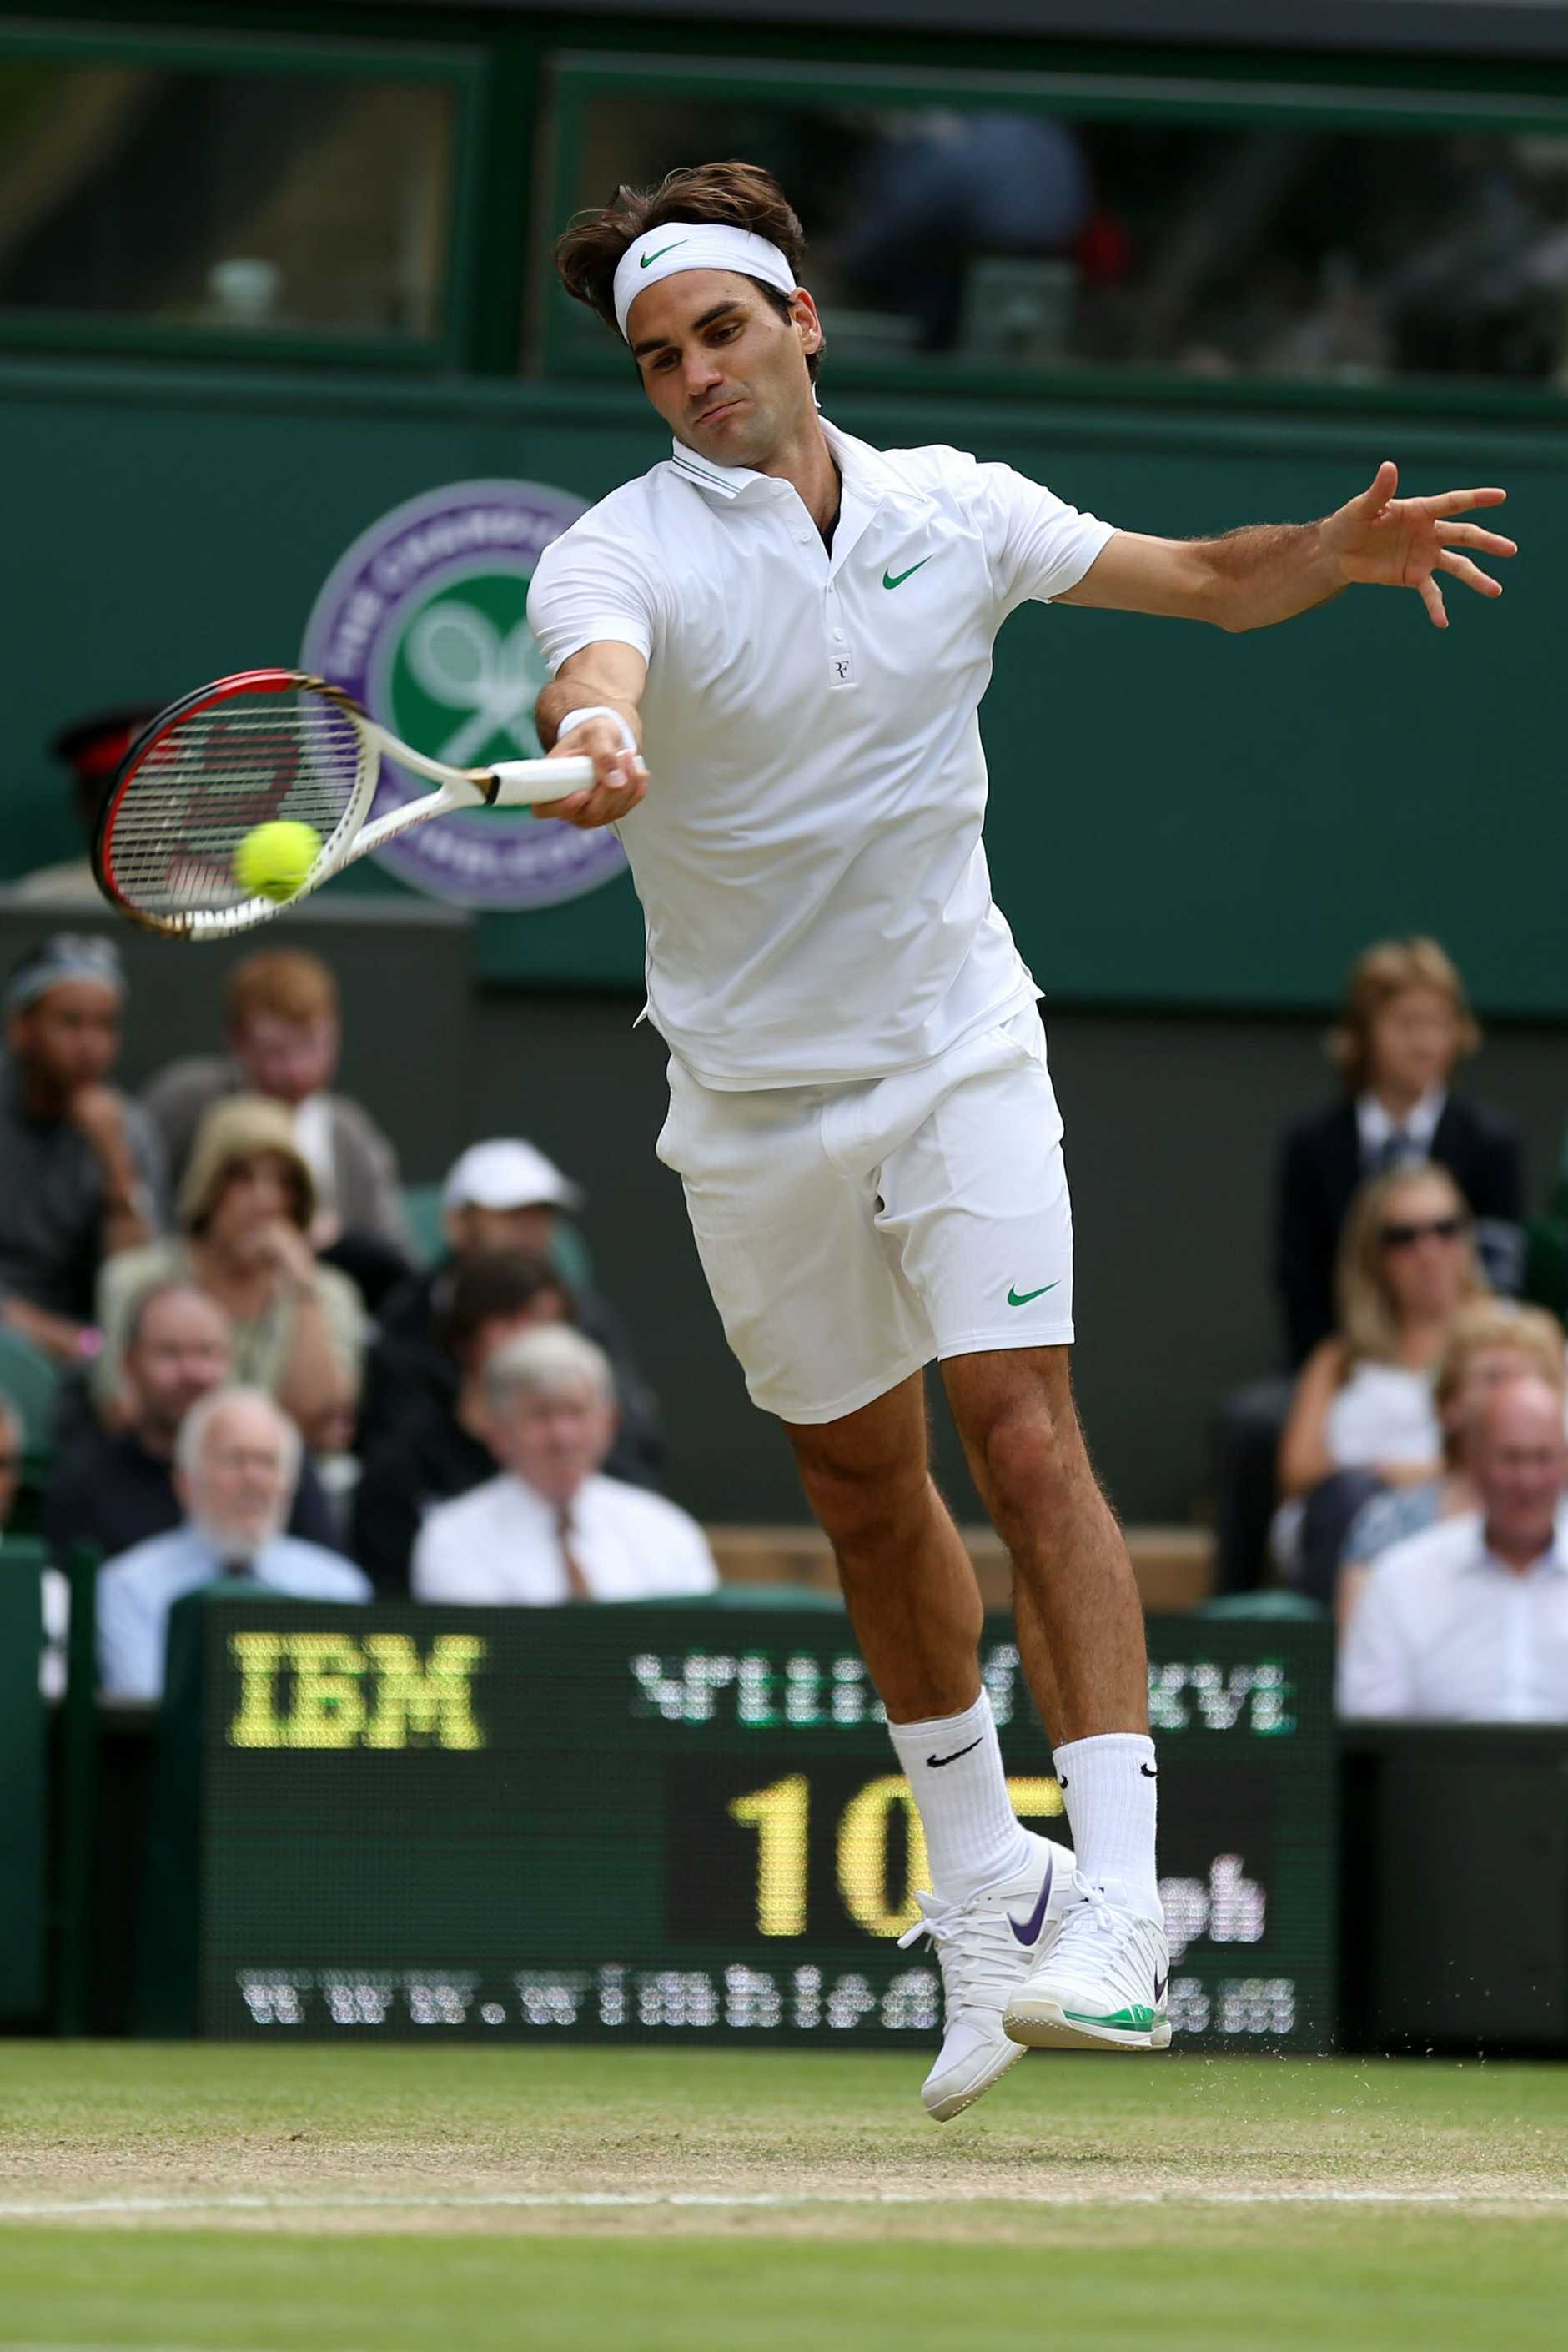 Roger Federer in action during his Gentlemen's Singles quarter final match against Mikhail Youzhny on day nine of the Wimbledon Lawn Tennis Championships.